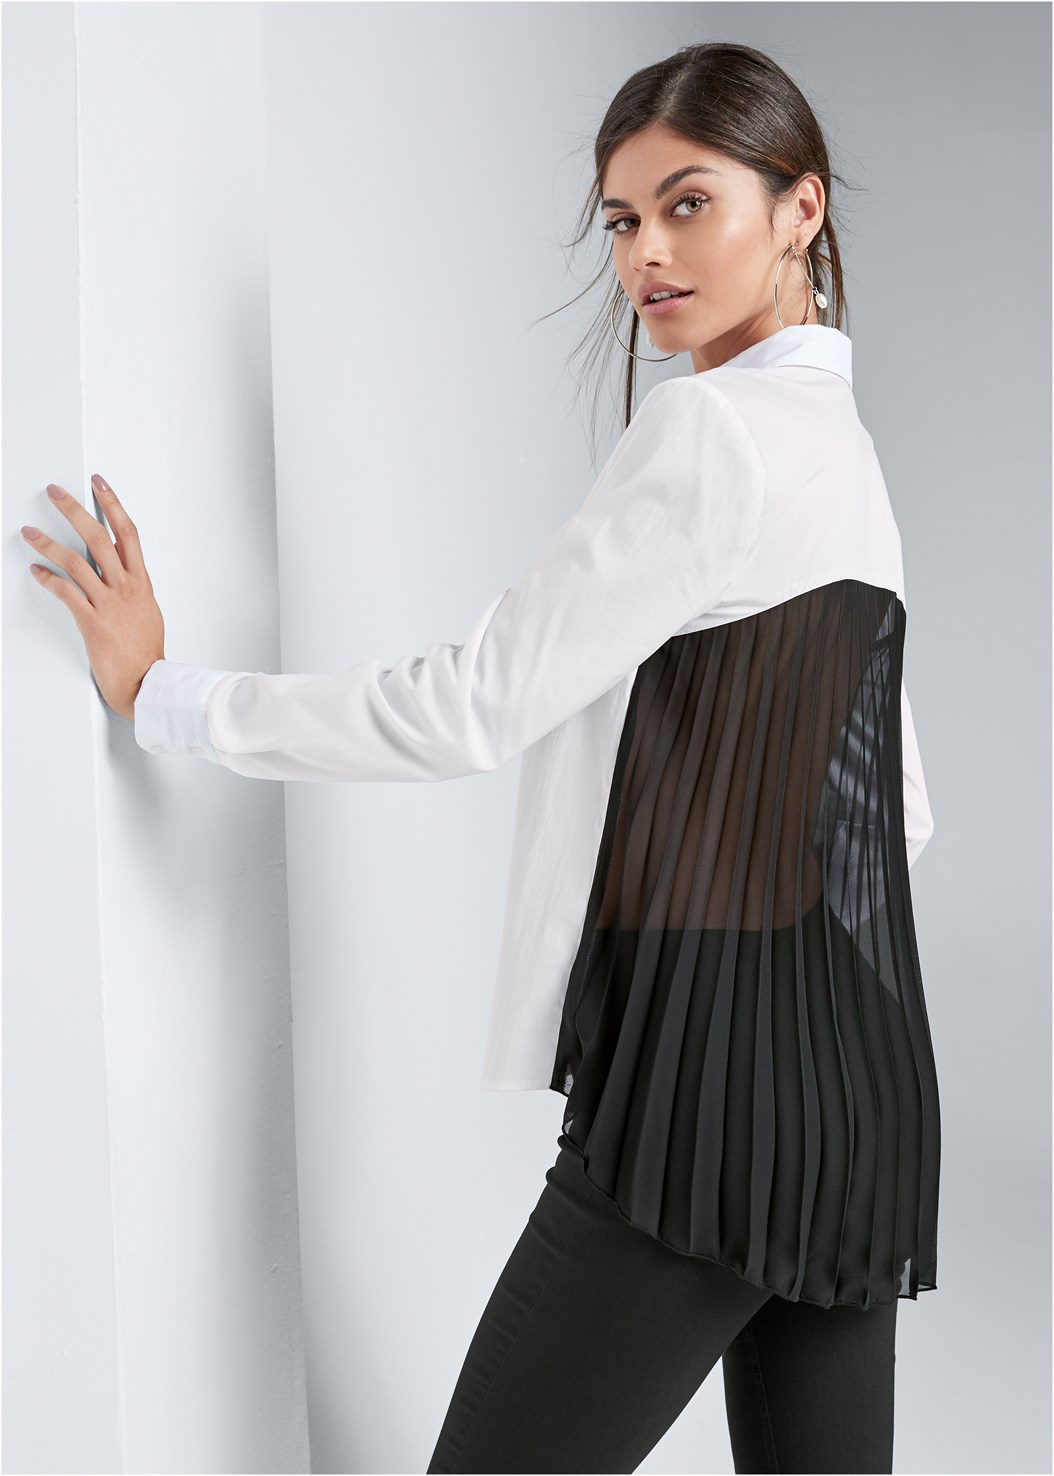 Pleated Blouse,Mid Rise Slimming Stretch Jeggings,Crisscross Strappy Heel